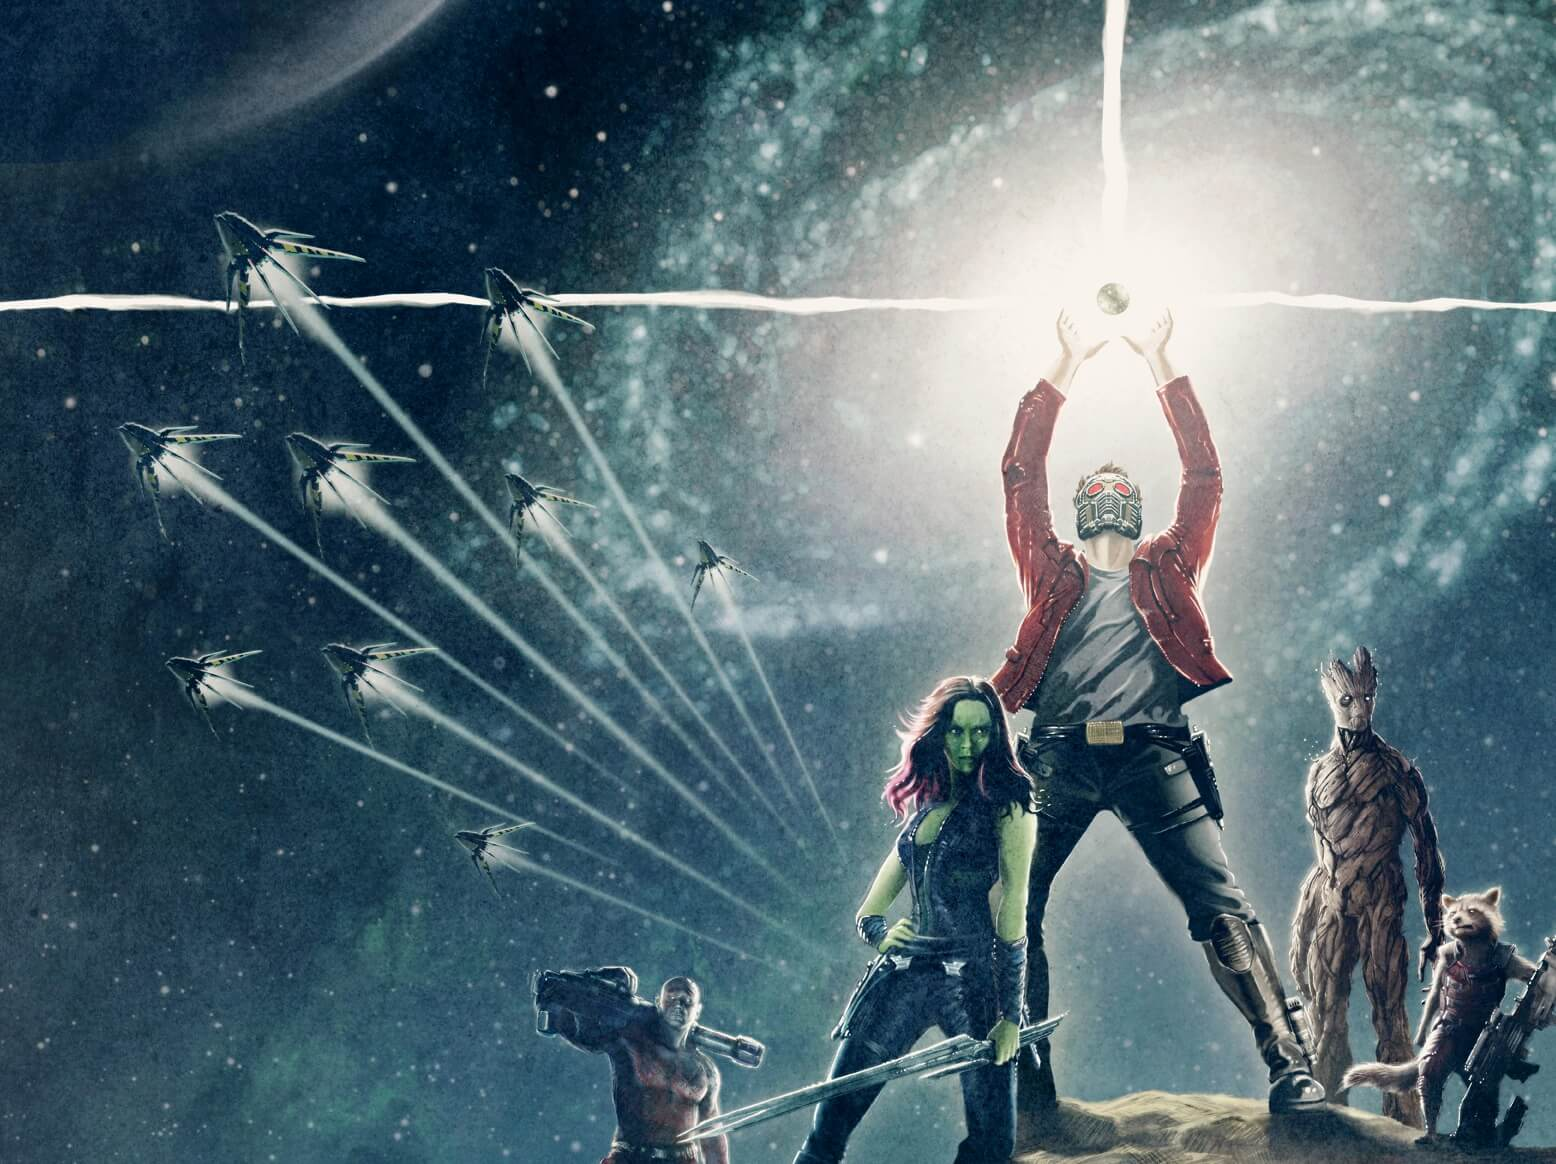 Fun stuff star wars trailer in the vein of guardians of the galaxy